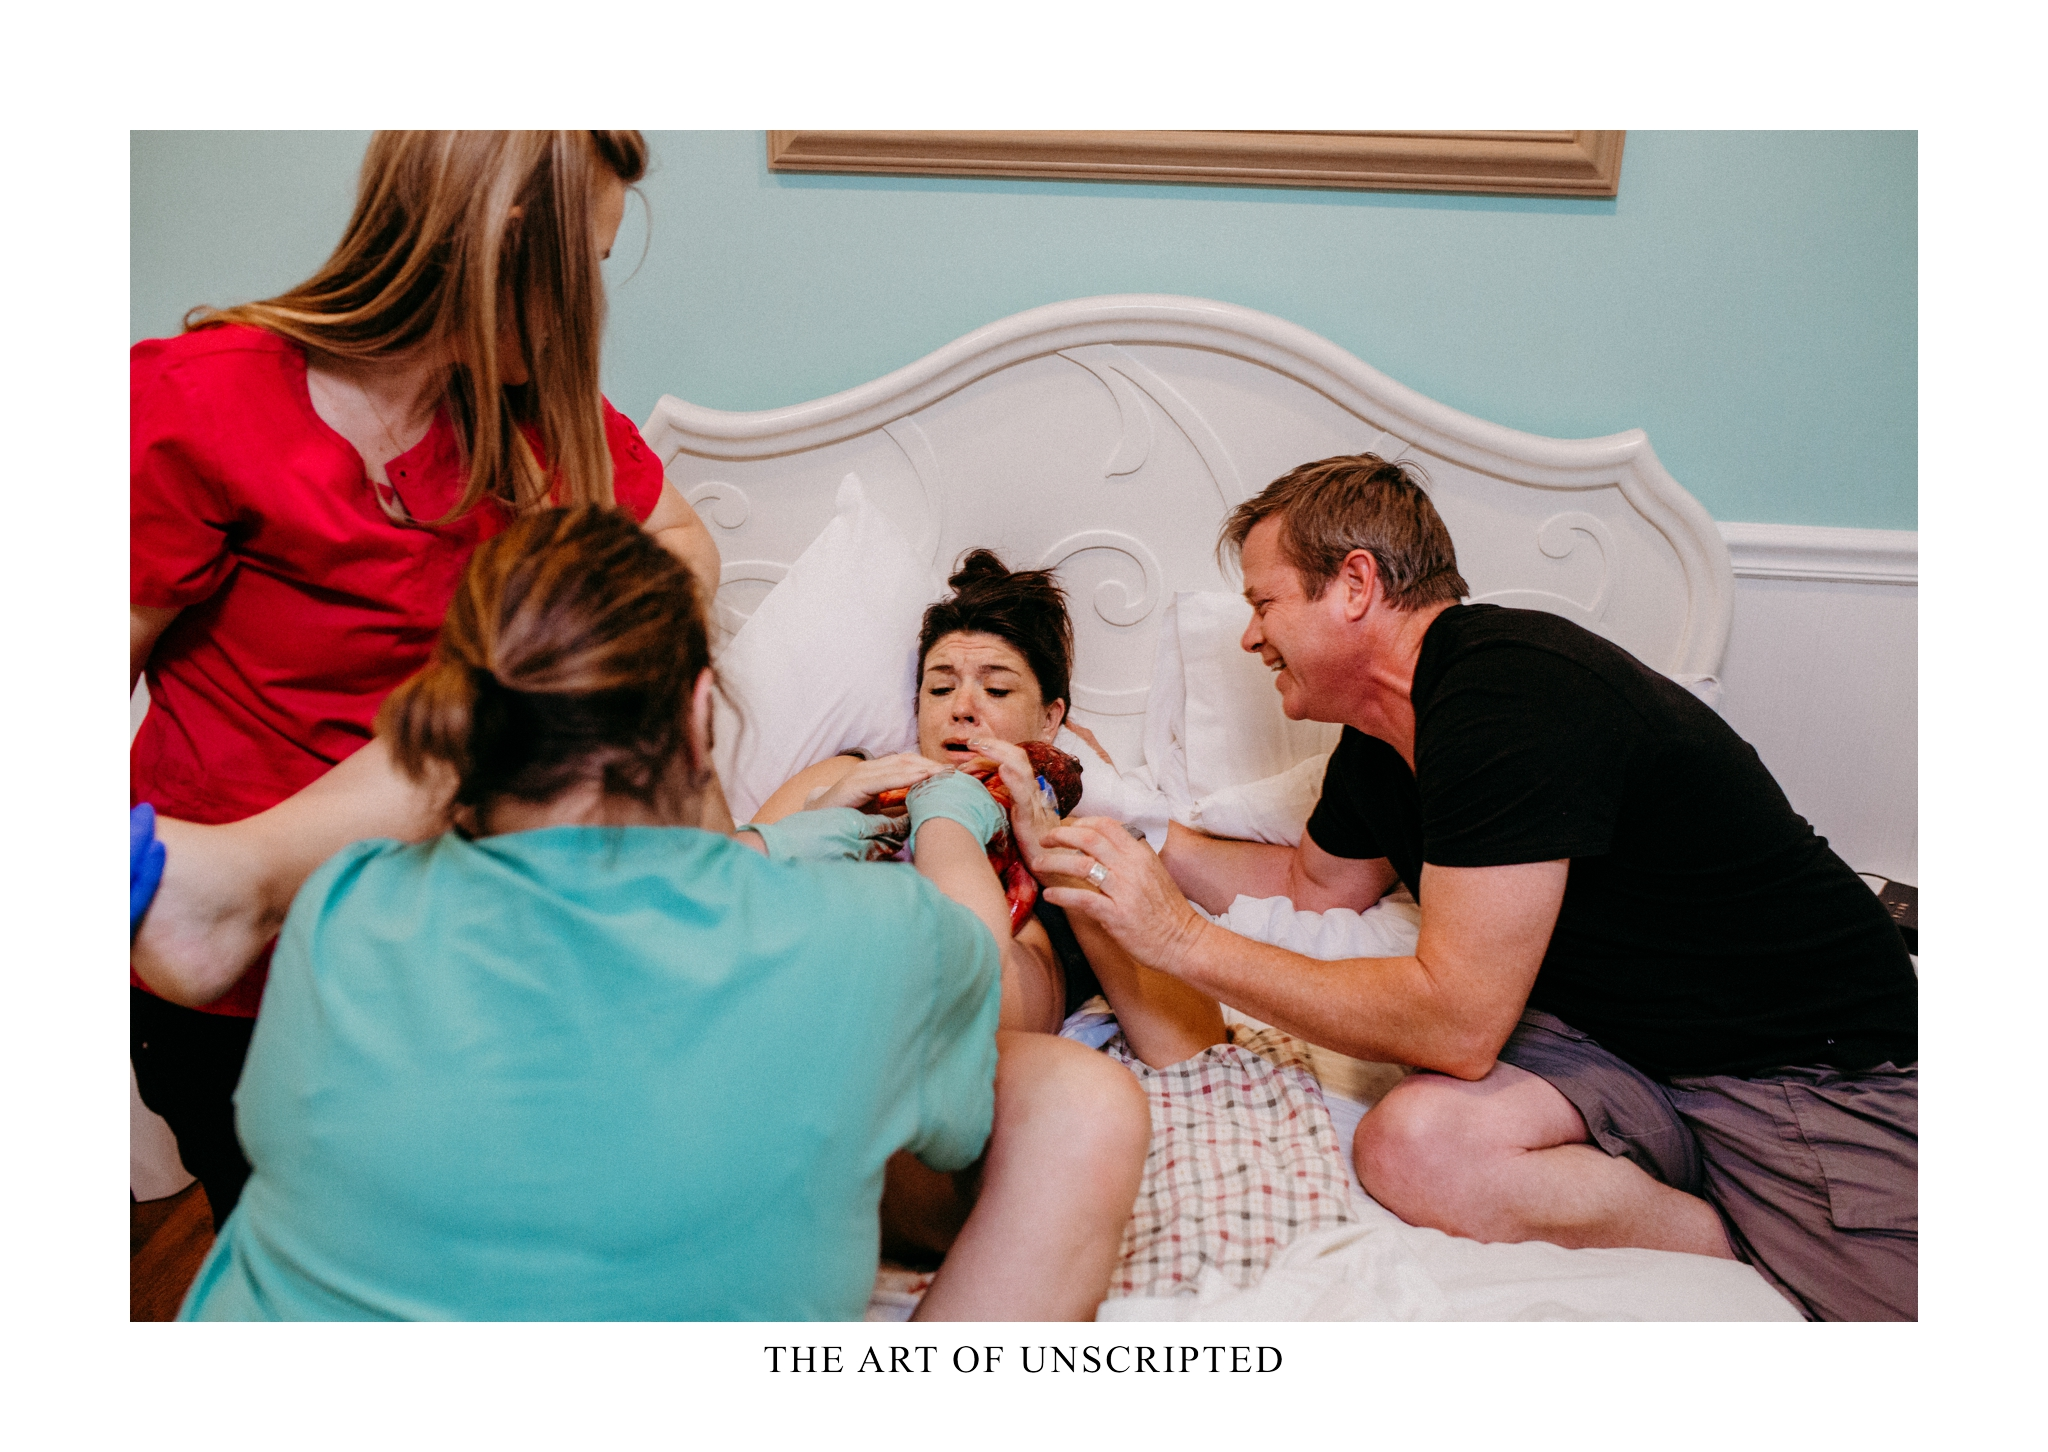 2017-06-11_001430__THE ART OF UNSCRIPTED_SPRINGFIELD MO_BIRTH PHOTOGRAPHER_ DOCUMENTARY_STORYTELLING_417_PHOTOGRAPHER